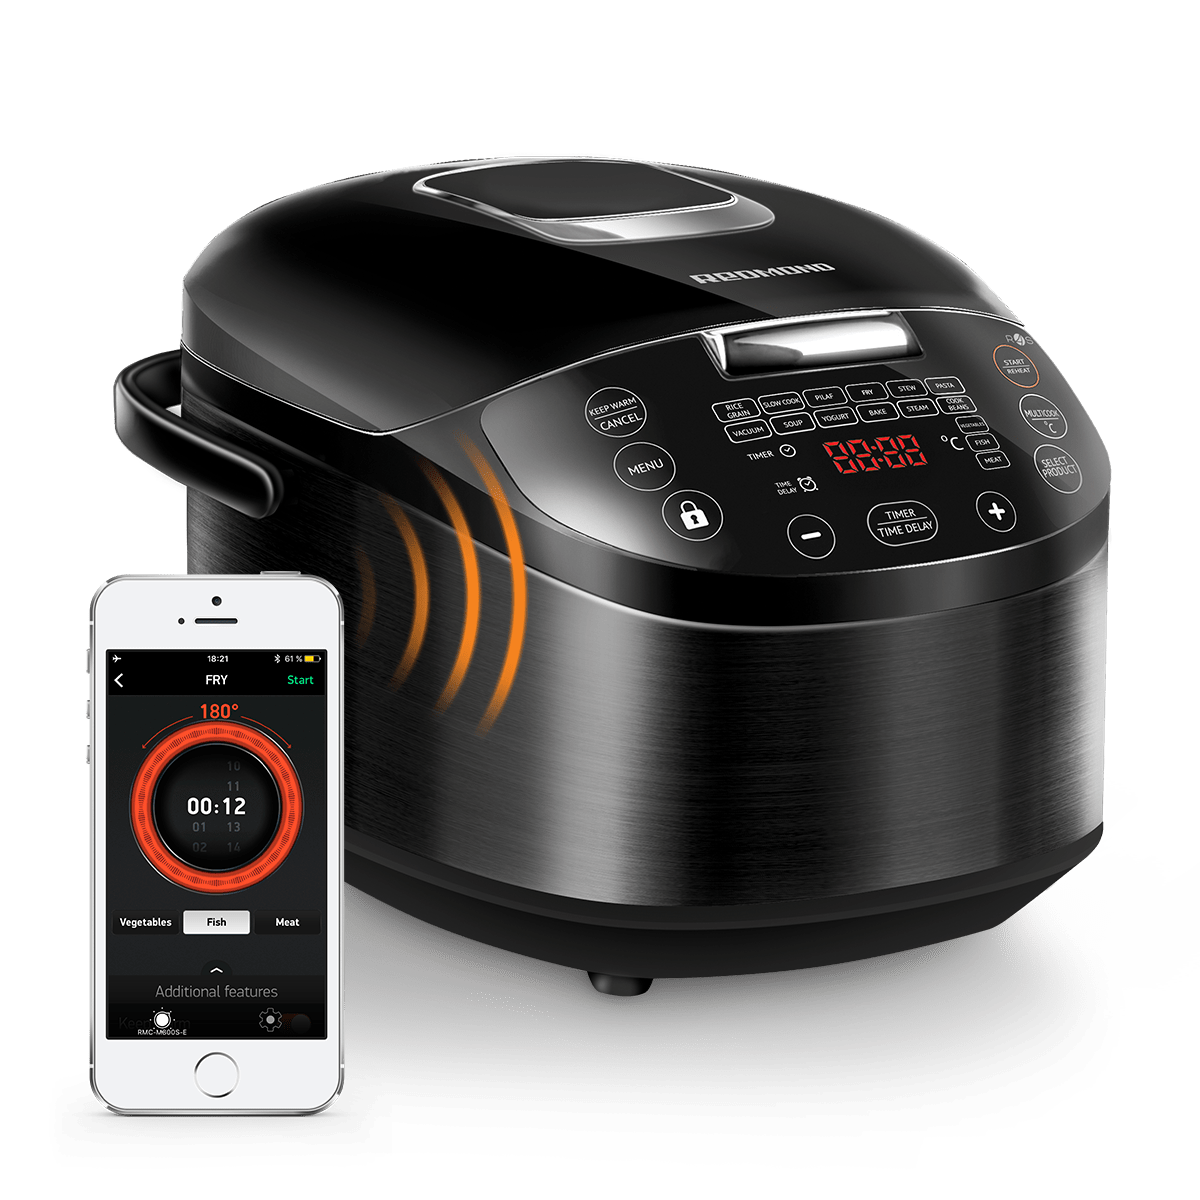 Enjoy your dinner in one click with the REDMOND multicooker SkyCooker M800S-Е